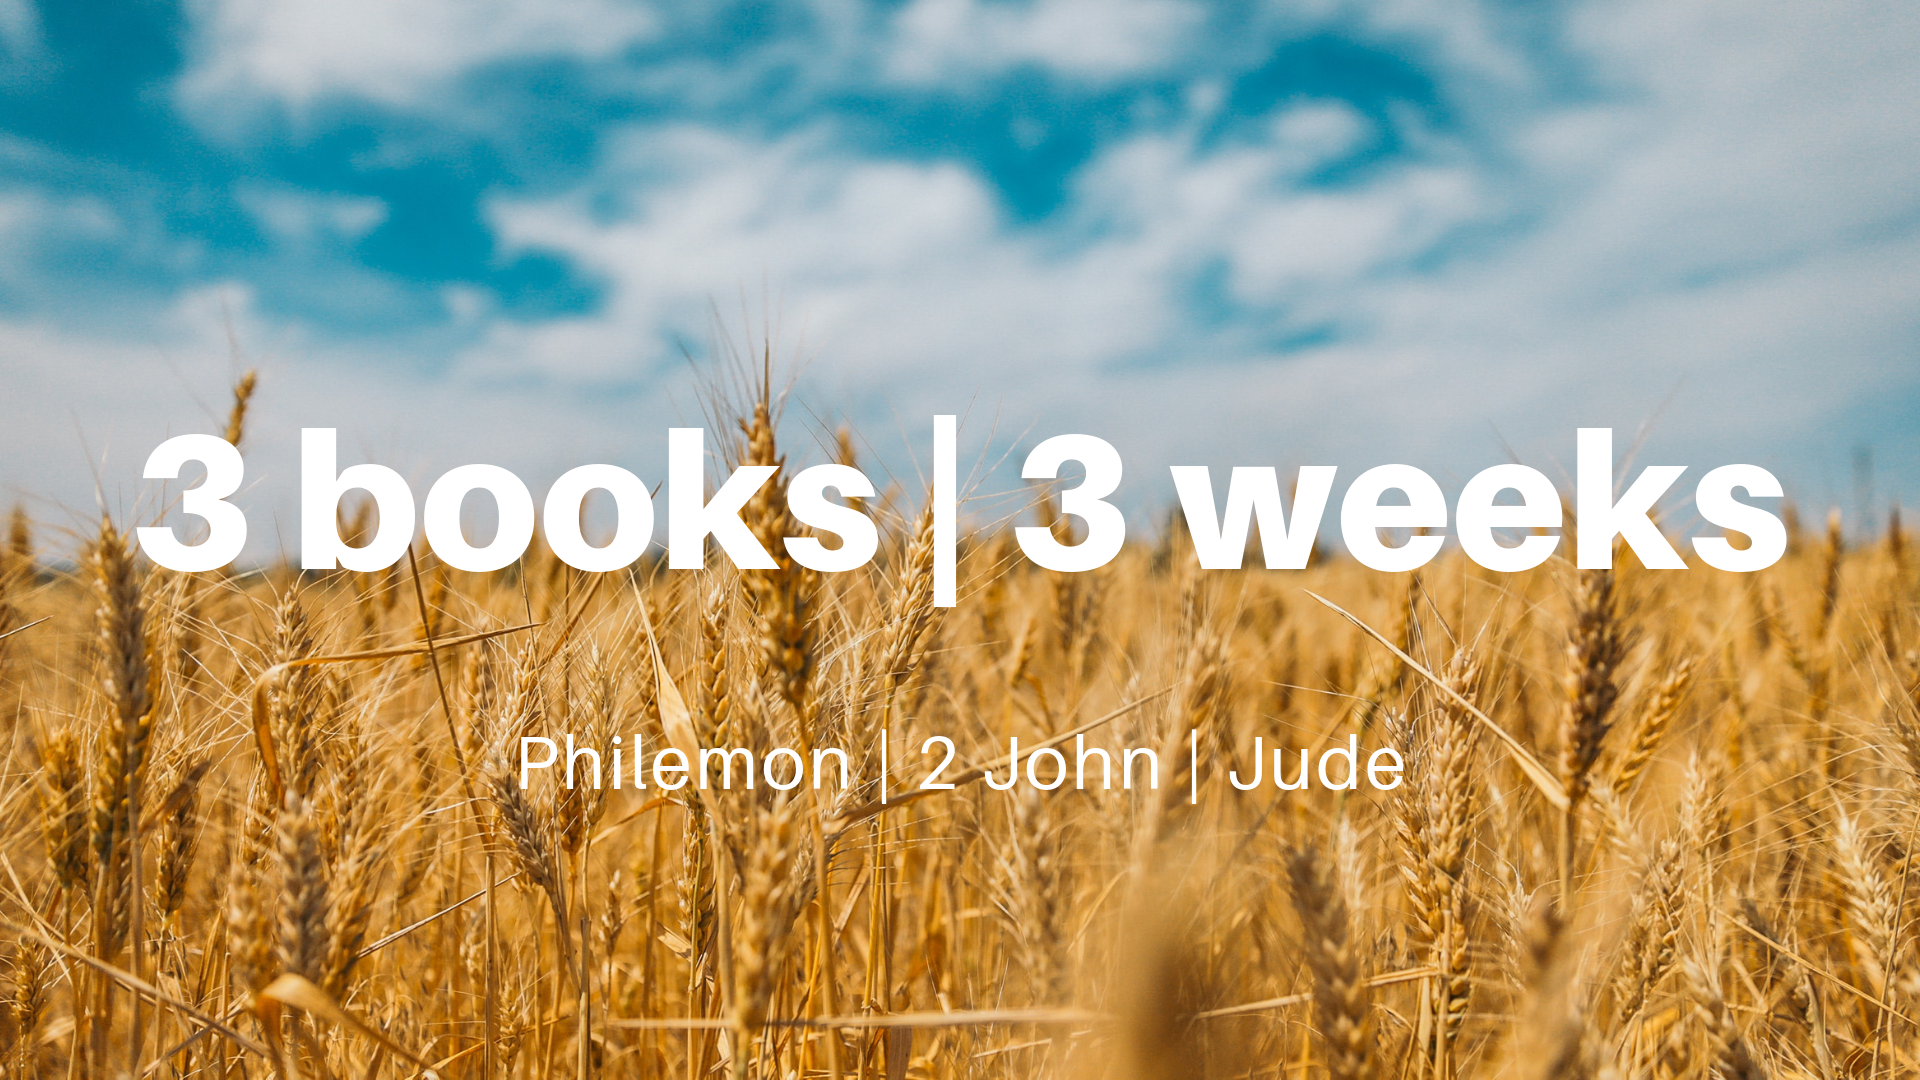 3 books _ 3 weeks.png